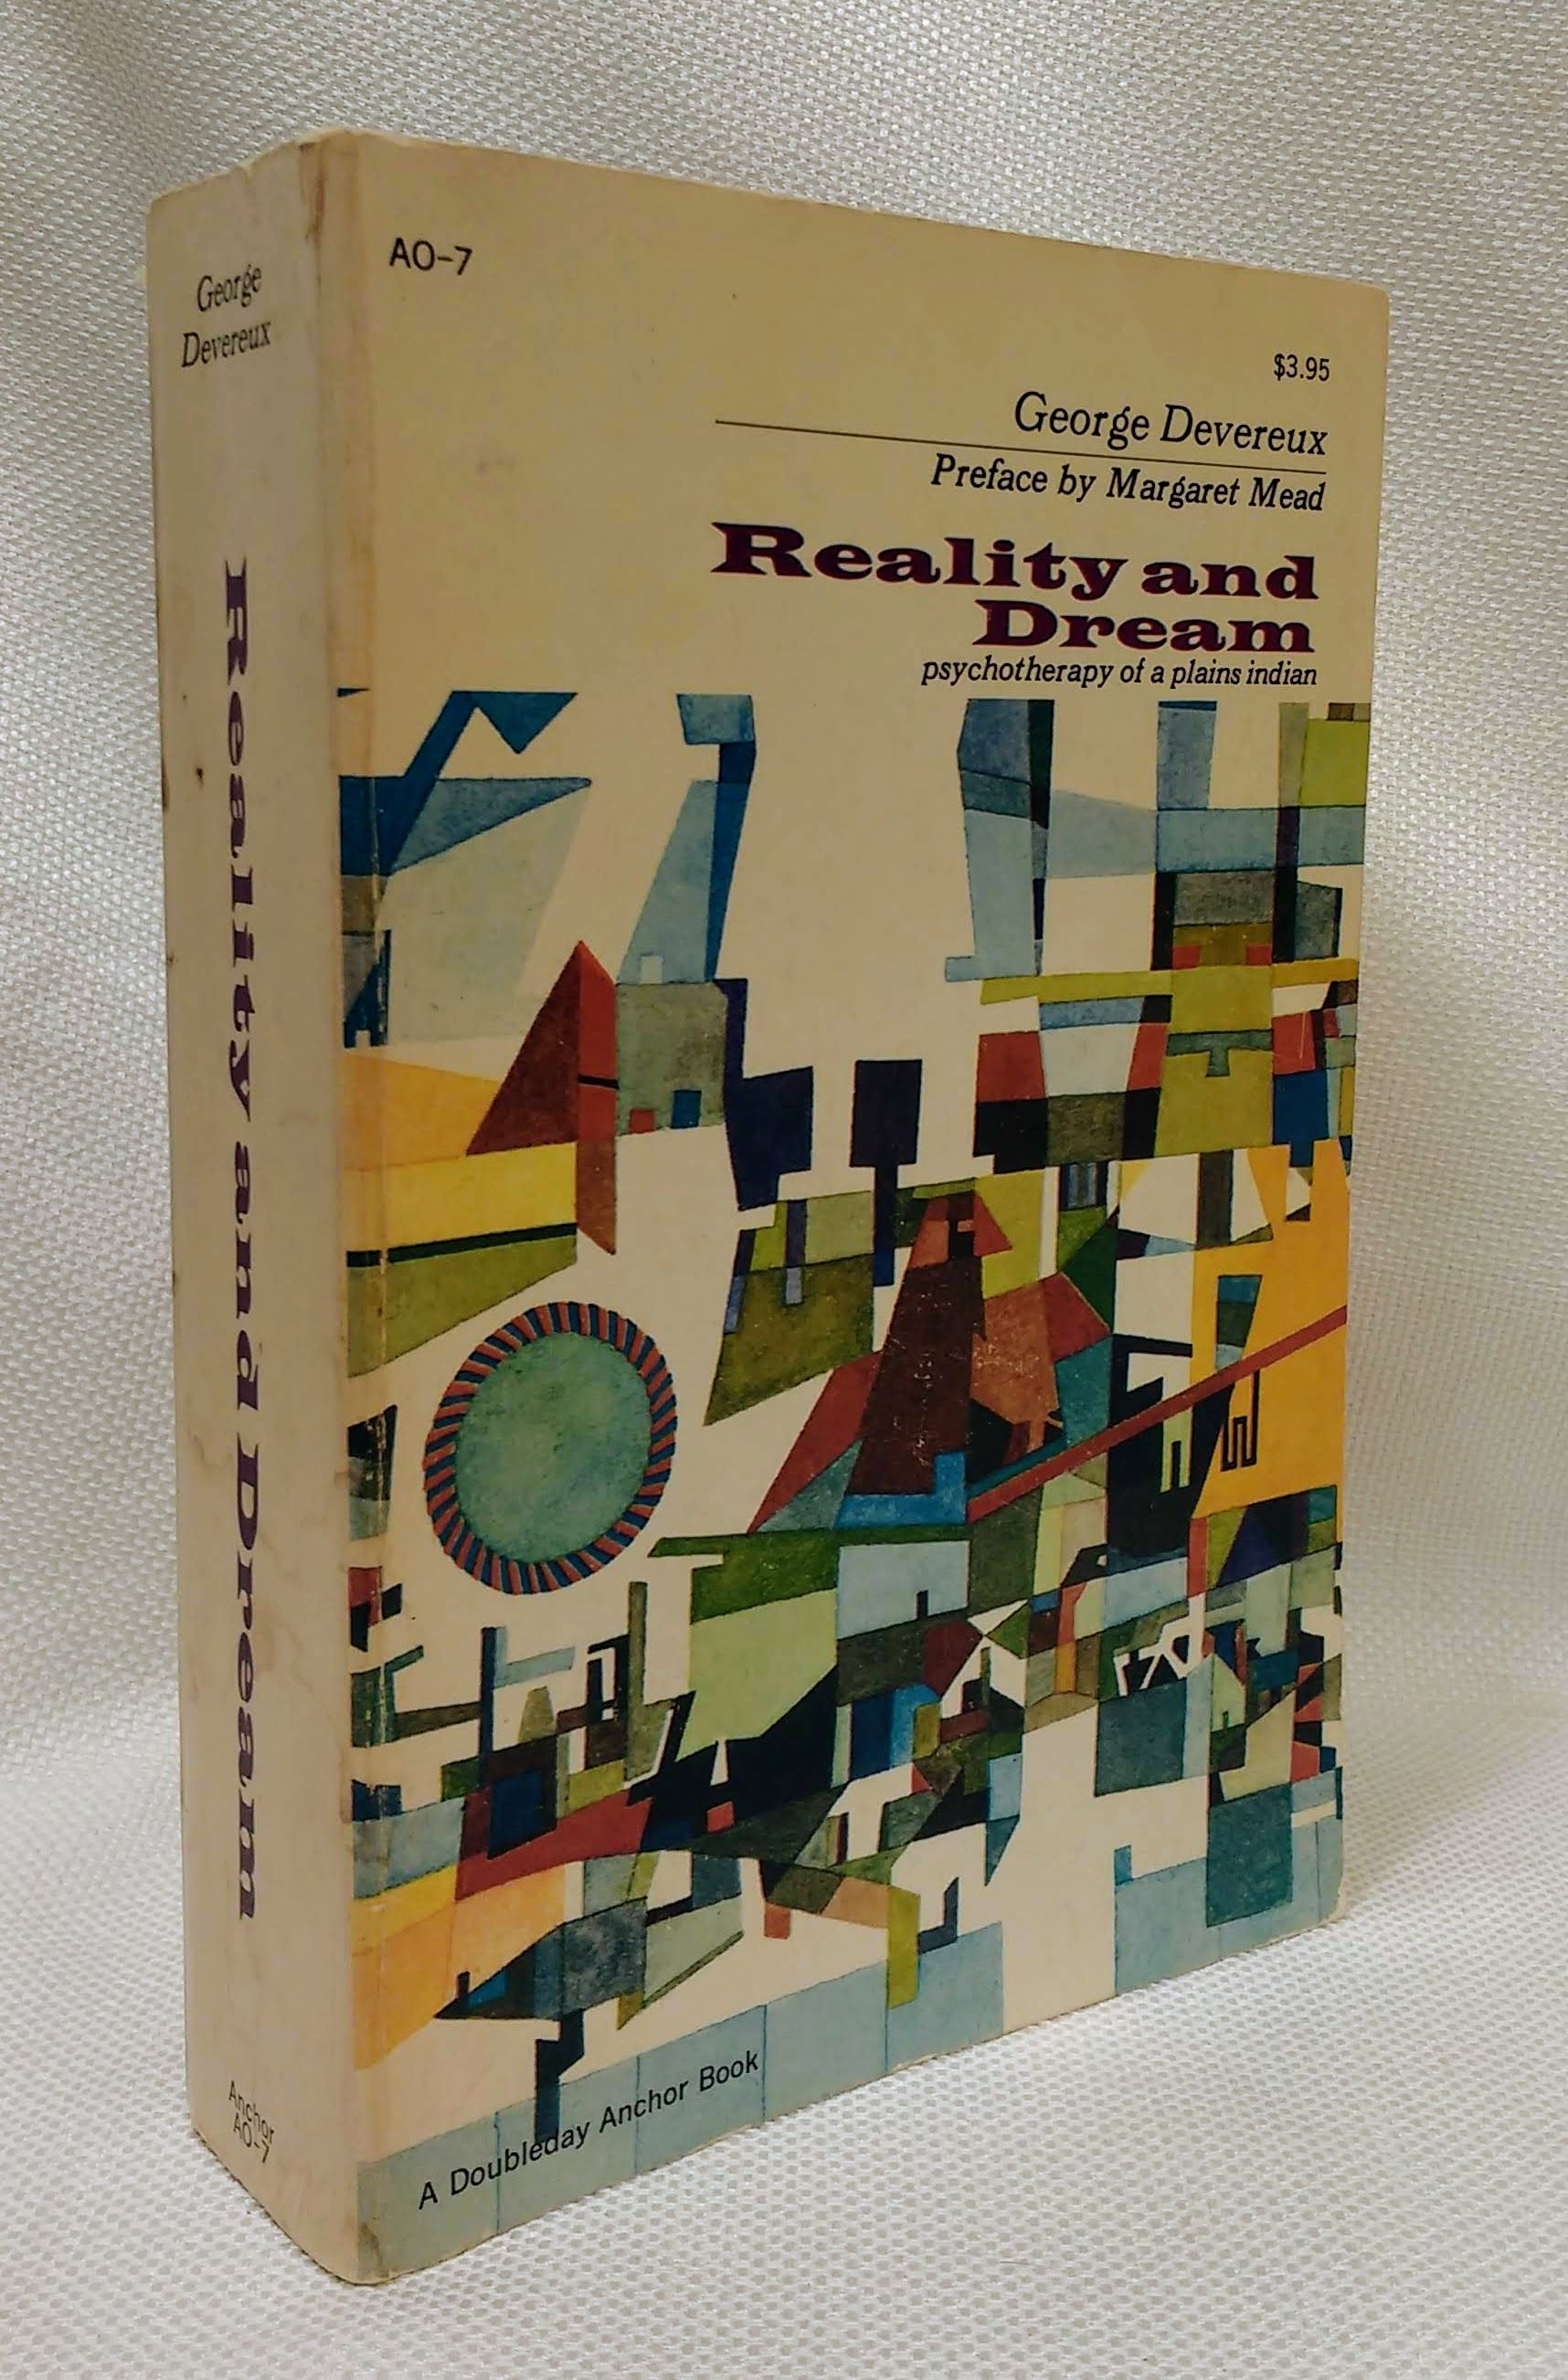 Reality and Dream: Psychotherapy of a Plains Indian, Devereux, George; Mead, Margaret [Preface]; Holt, Robert B. [Contributor]